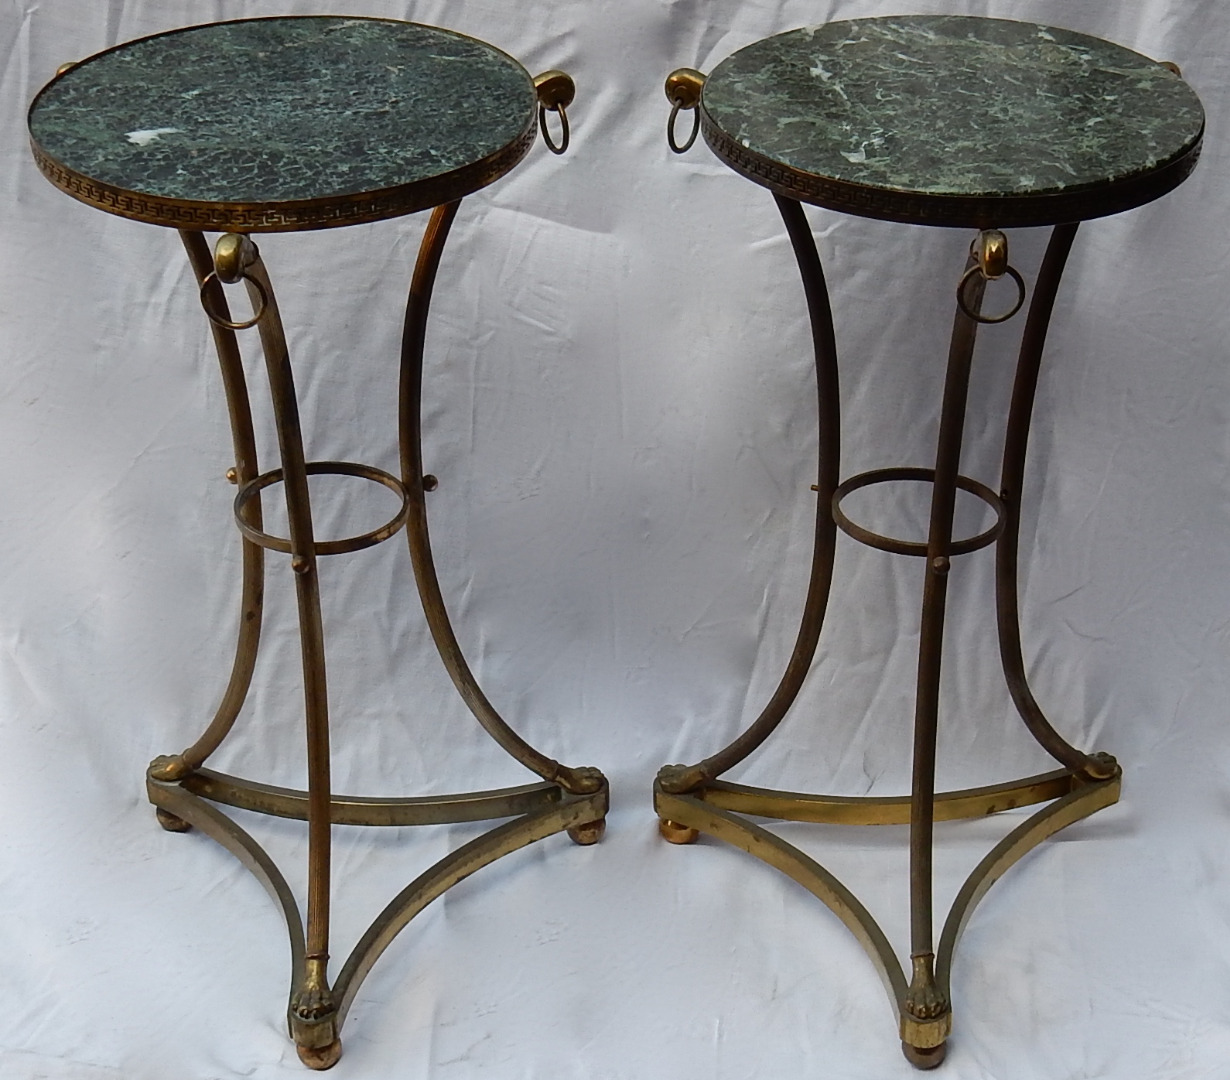 1950/70 Pedestal Table in Gilt Bronze With Top in Green Marble